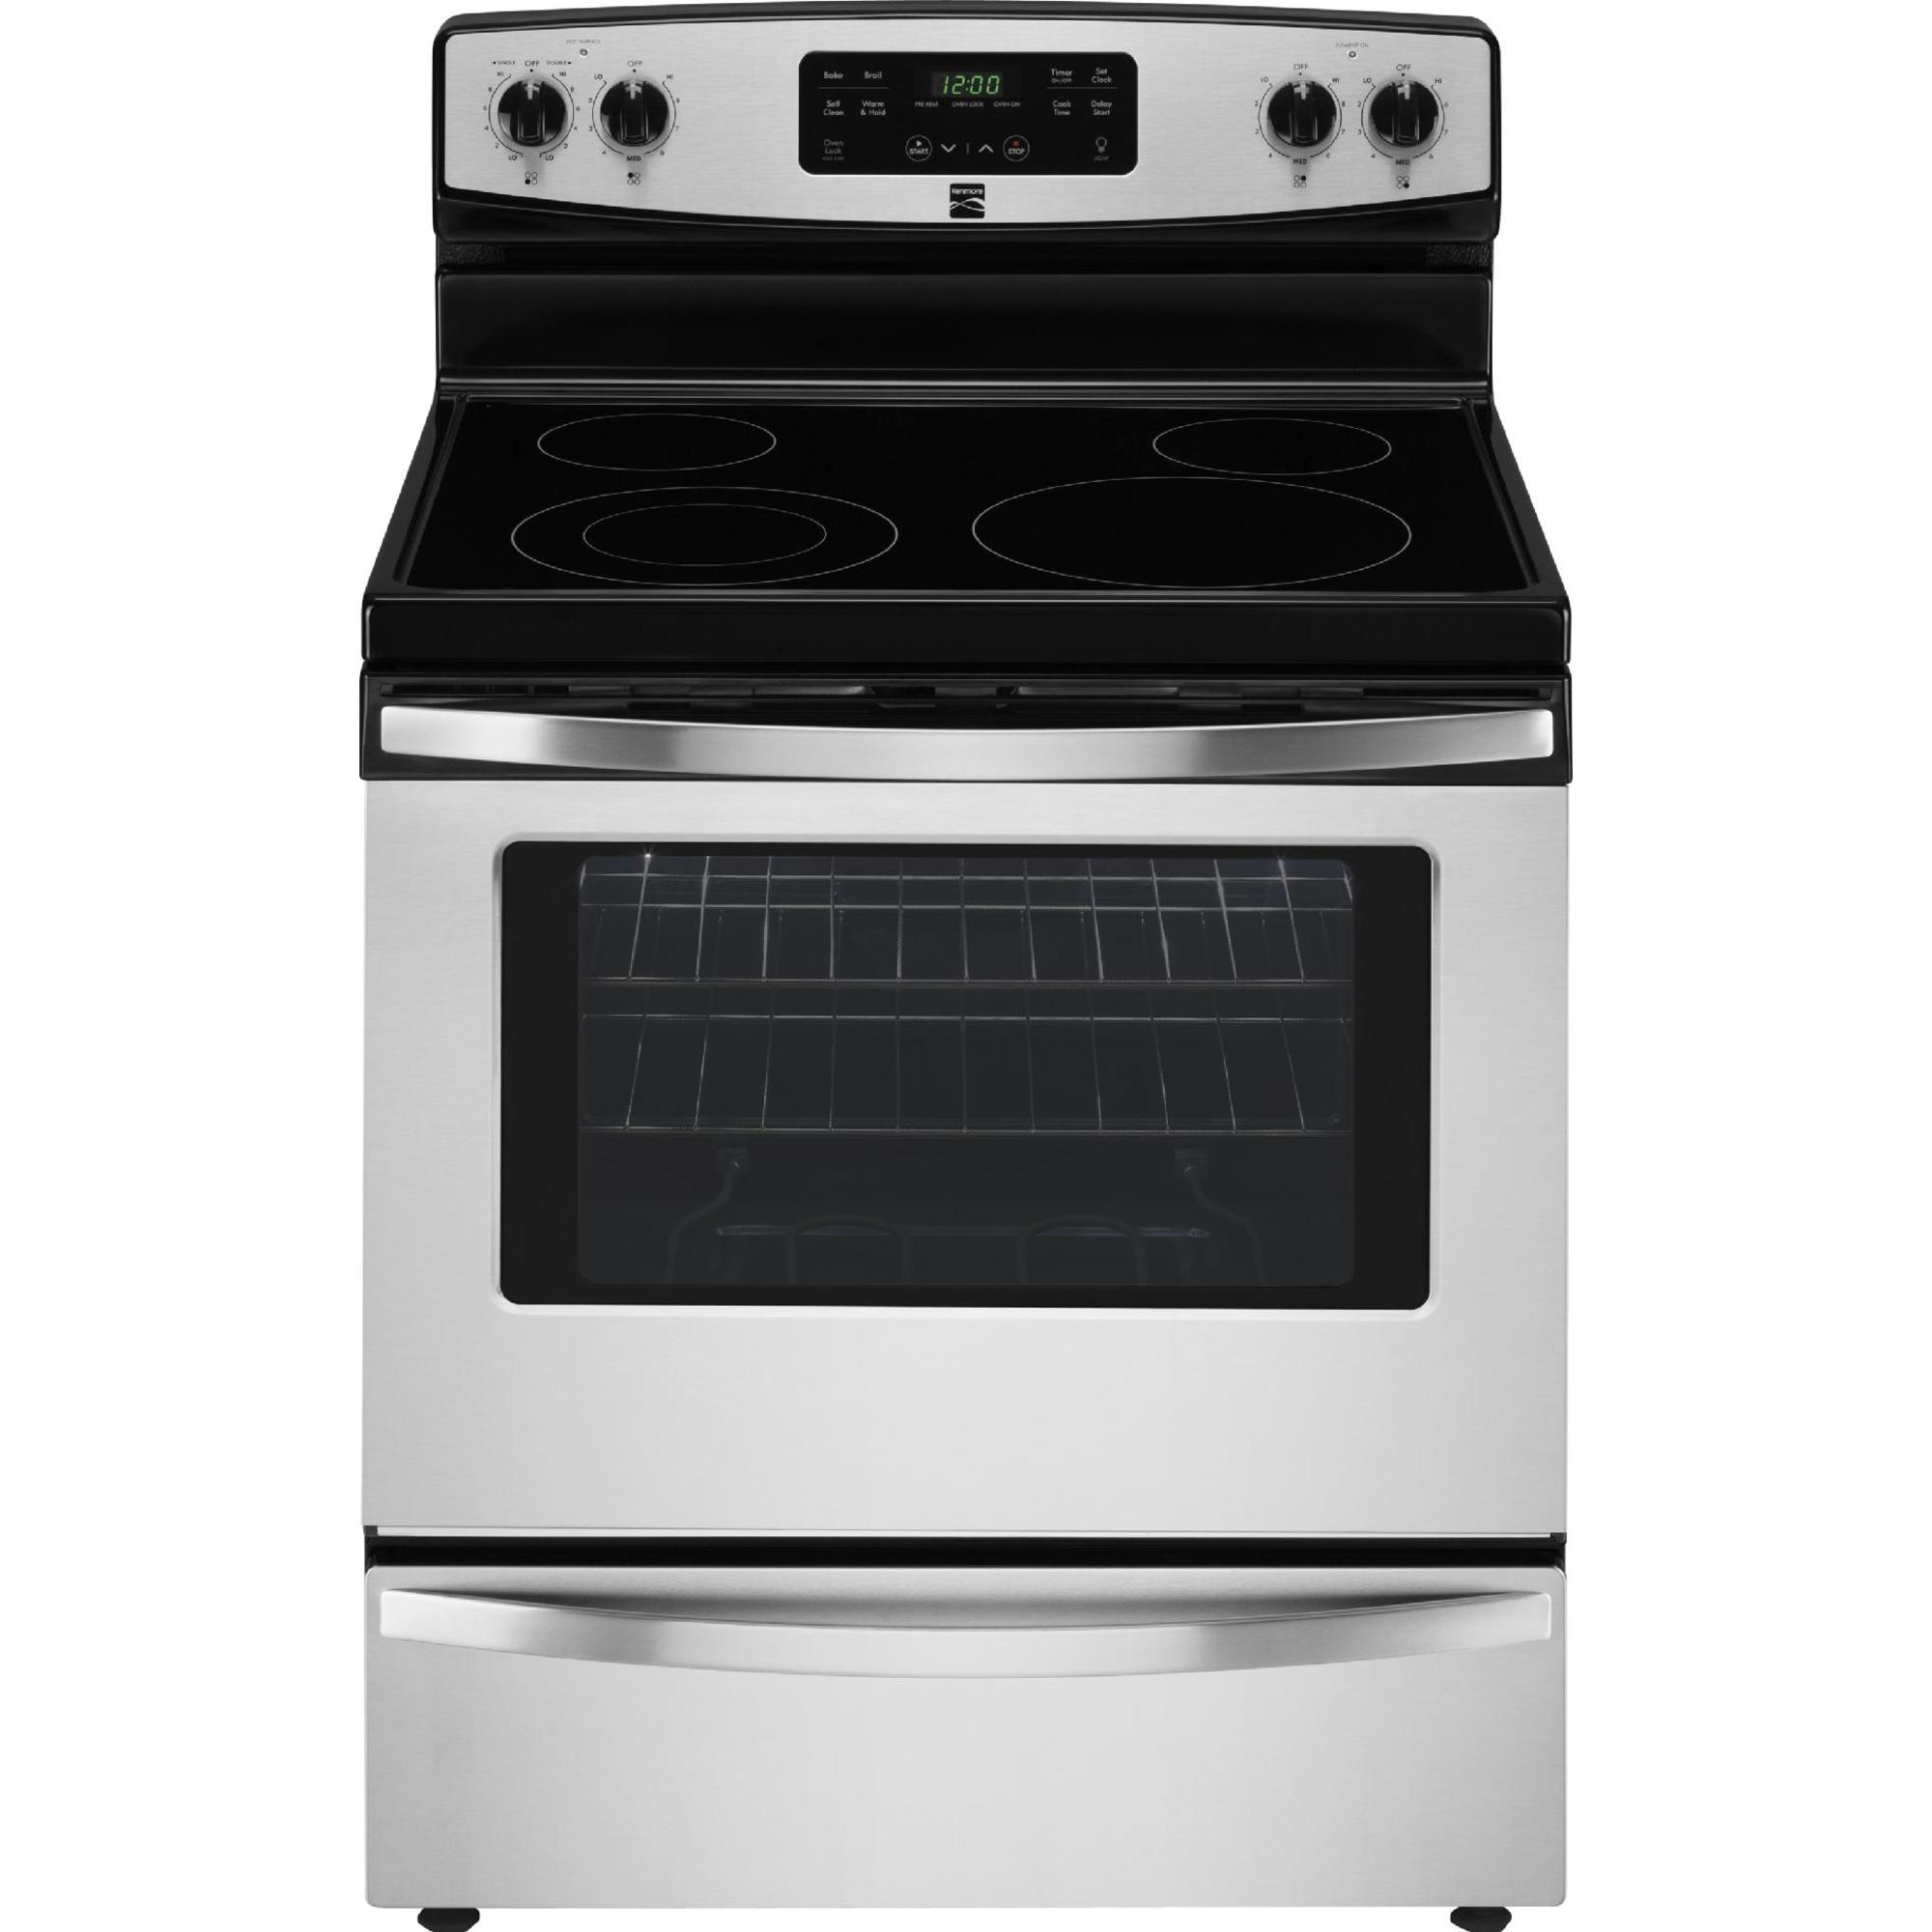 94173-5-3-cu-ft-Electric-Freestanding-Range-w-Self-Clean-Stainless-Steel